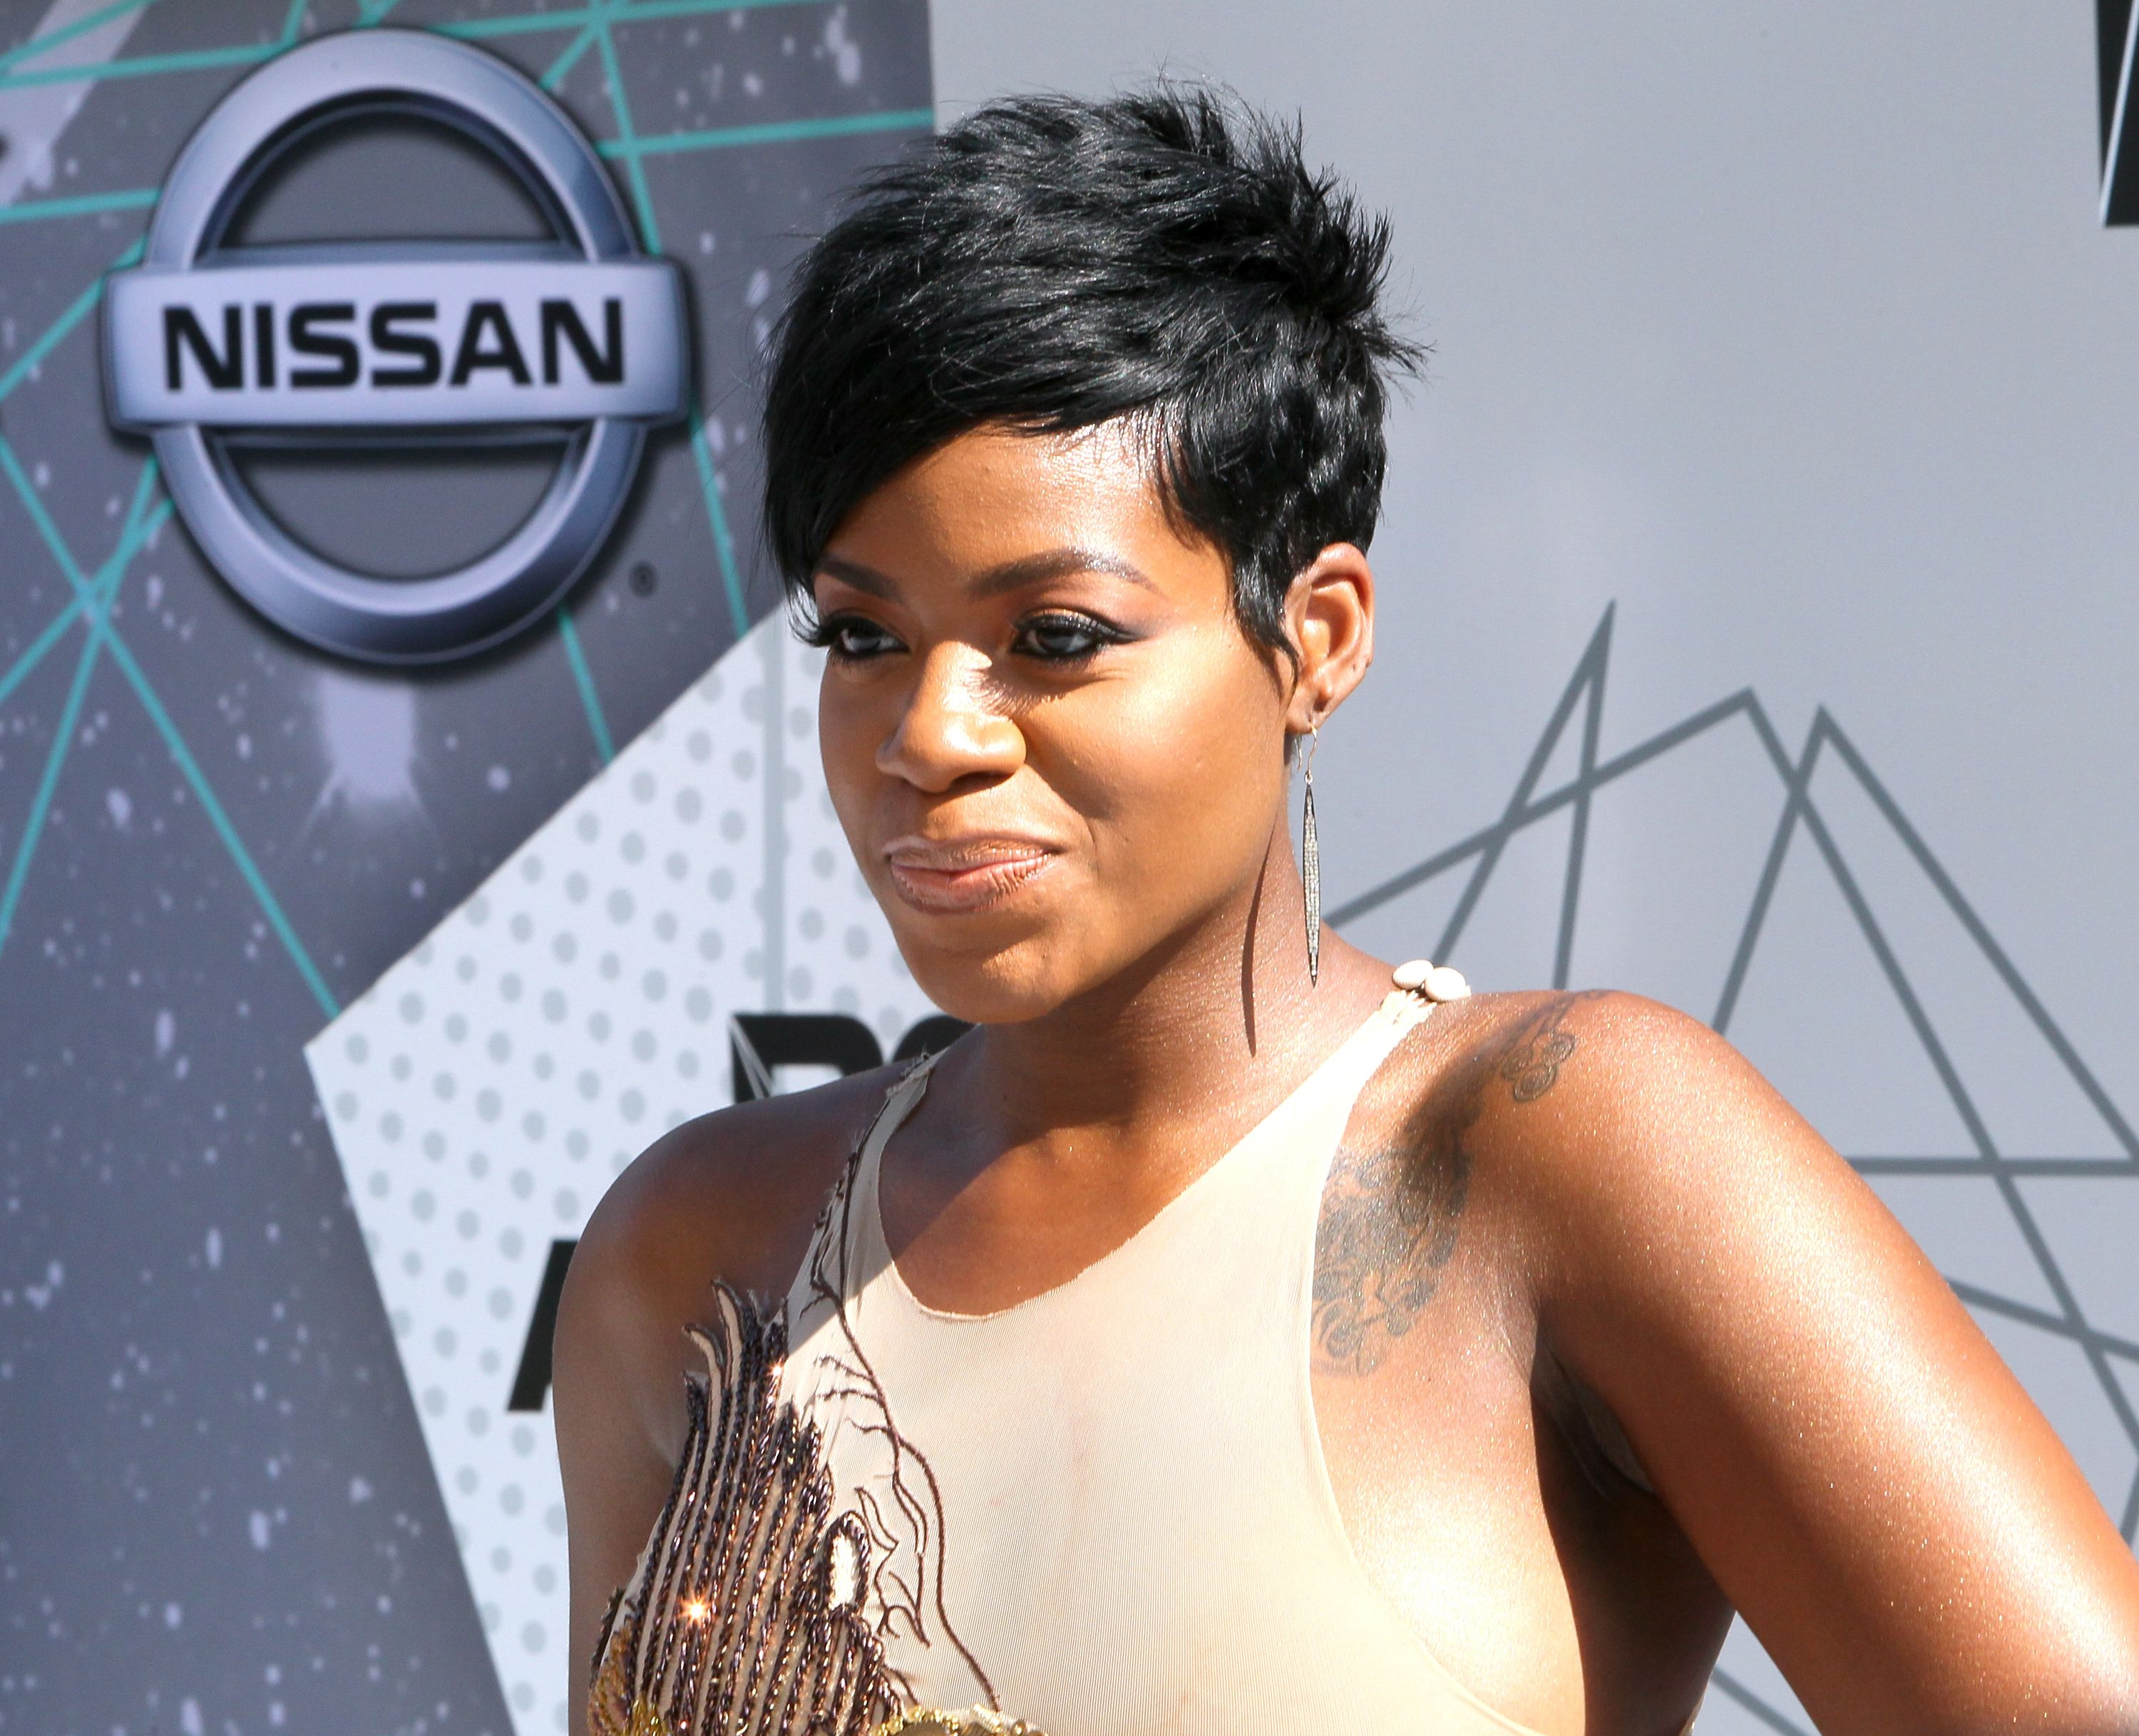 Fantasia Barrino attends the 2016 BET Awards at Microsoft Theater on June 26, 2016 in Los Angeles, California. | Photo: Getty Images.